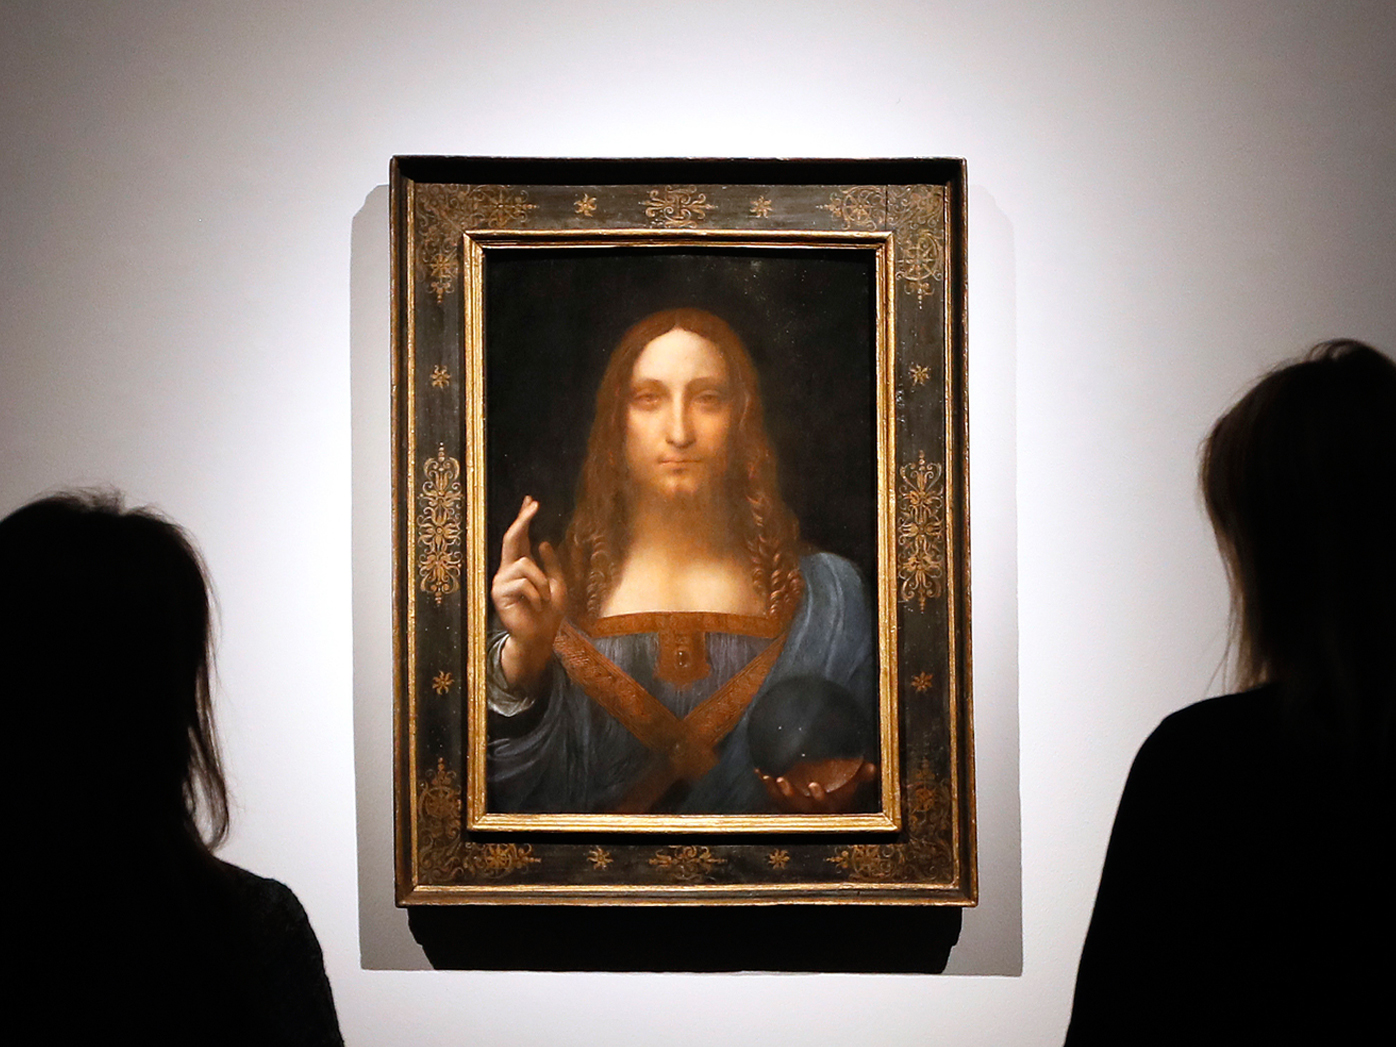 Salvator Mundi: The small, 66-centimetre-tall panel was commissioned by Louis XII of France around 1500.